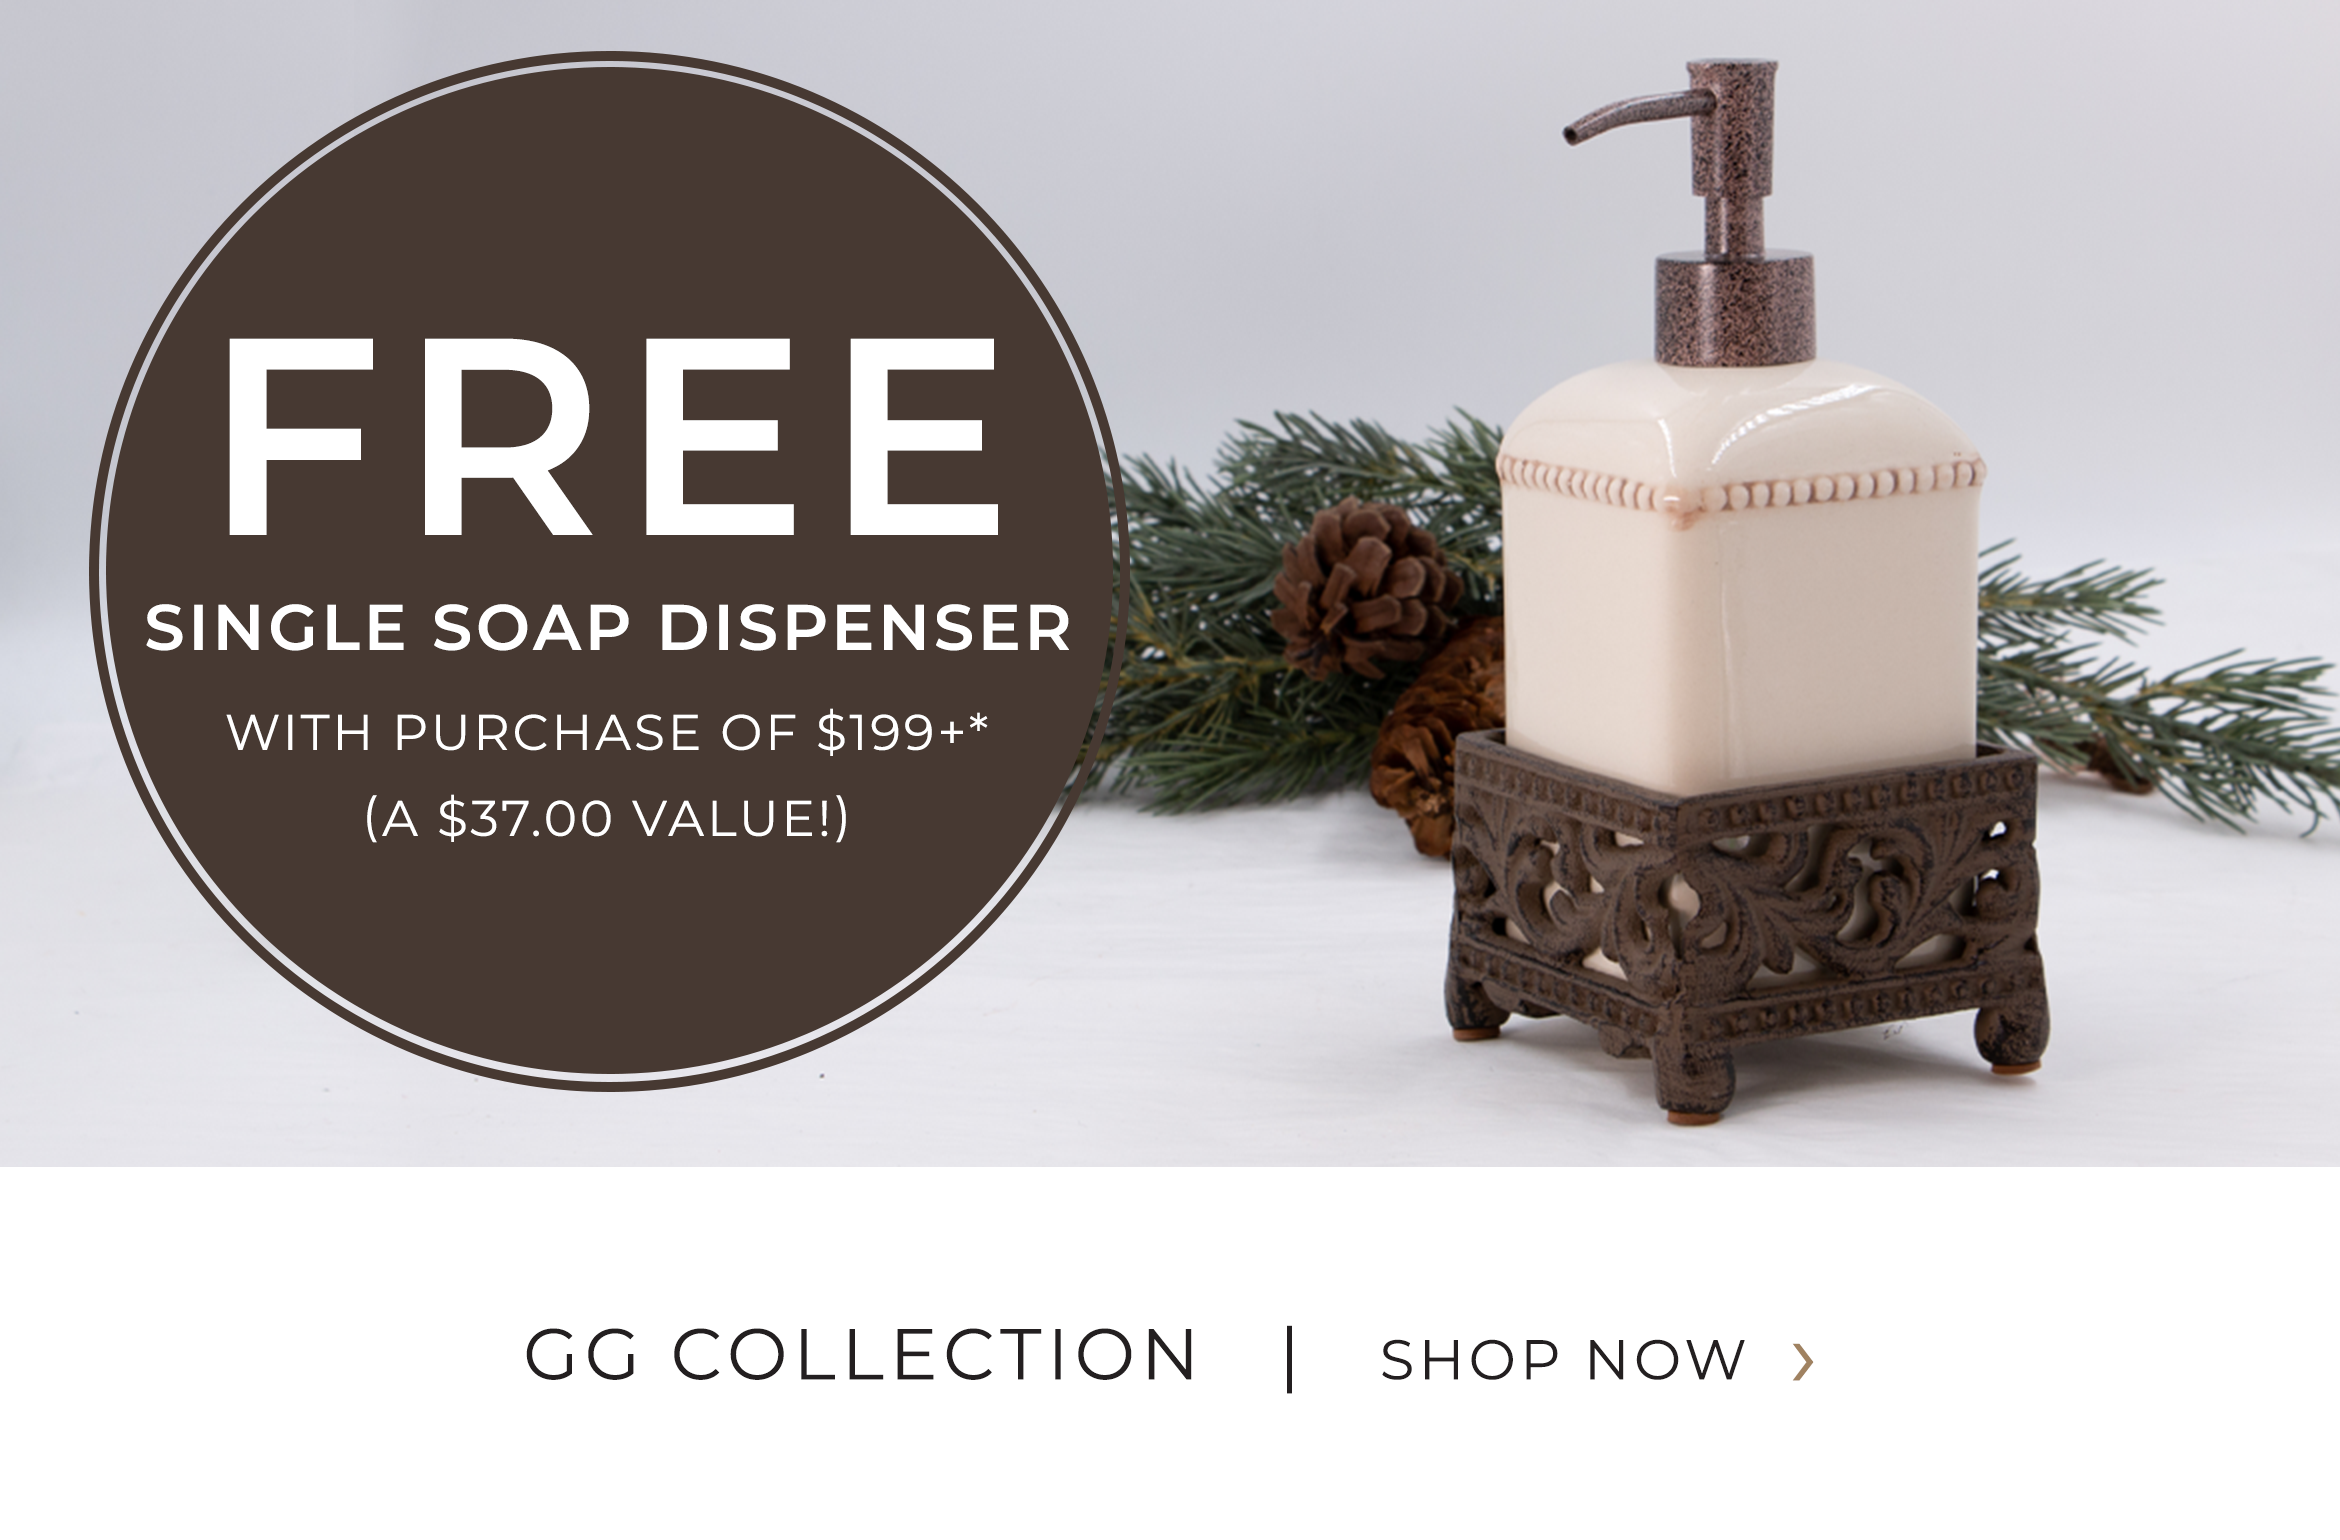 GG Collection - FREE Single Soap Dispenser with purchase of $99+